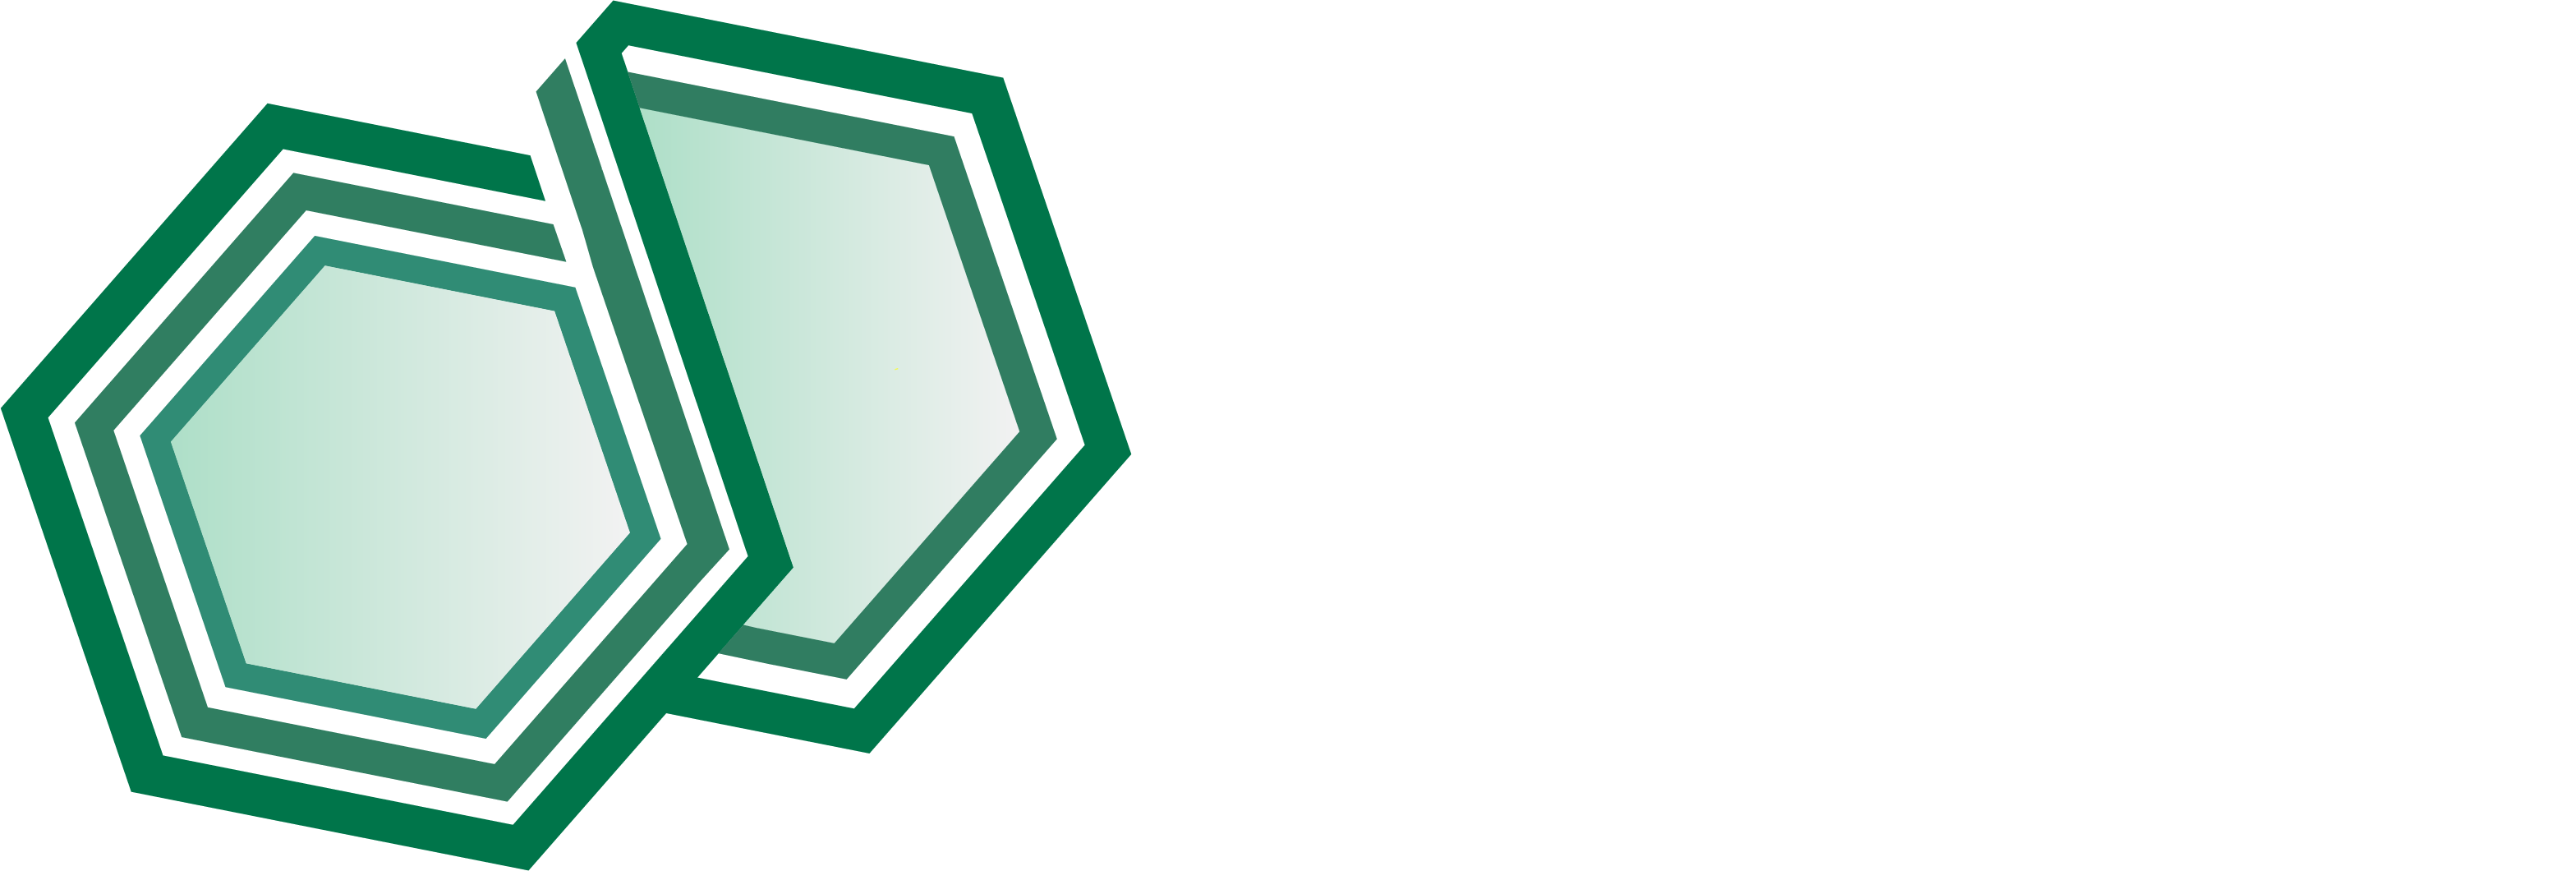 Firpack